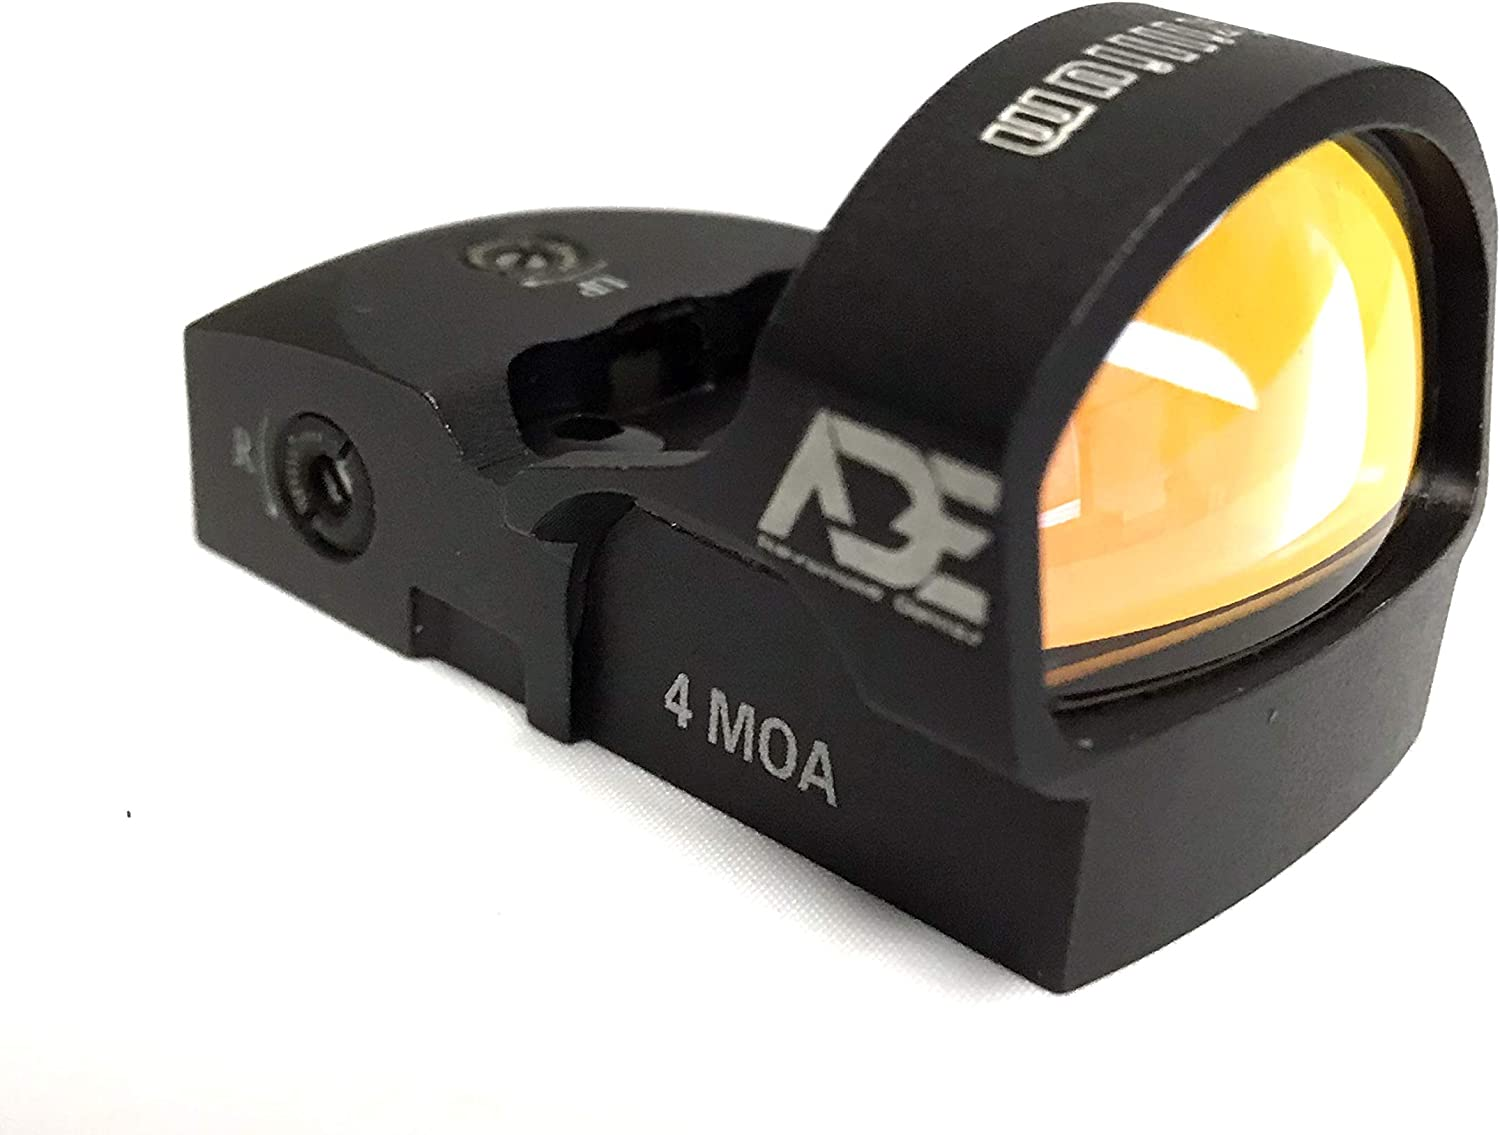 The Best Xdm Red Dot